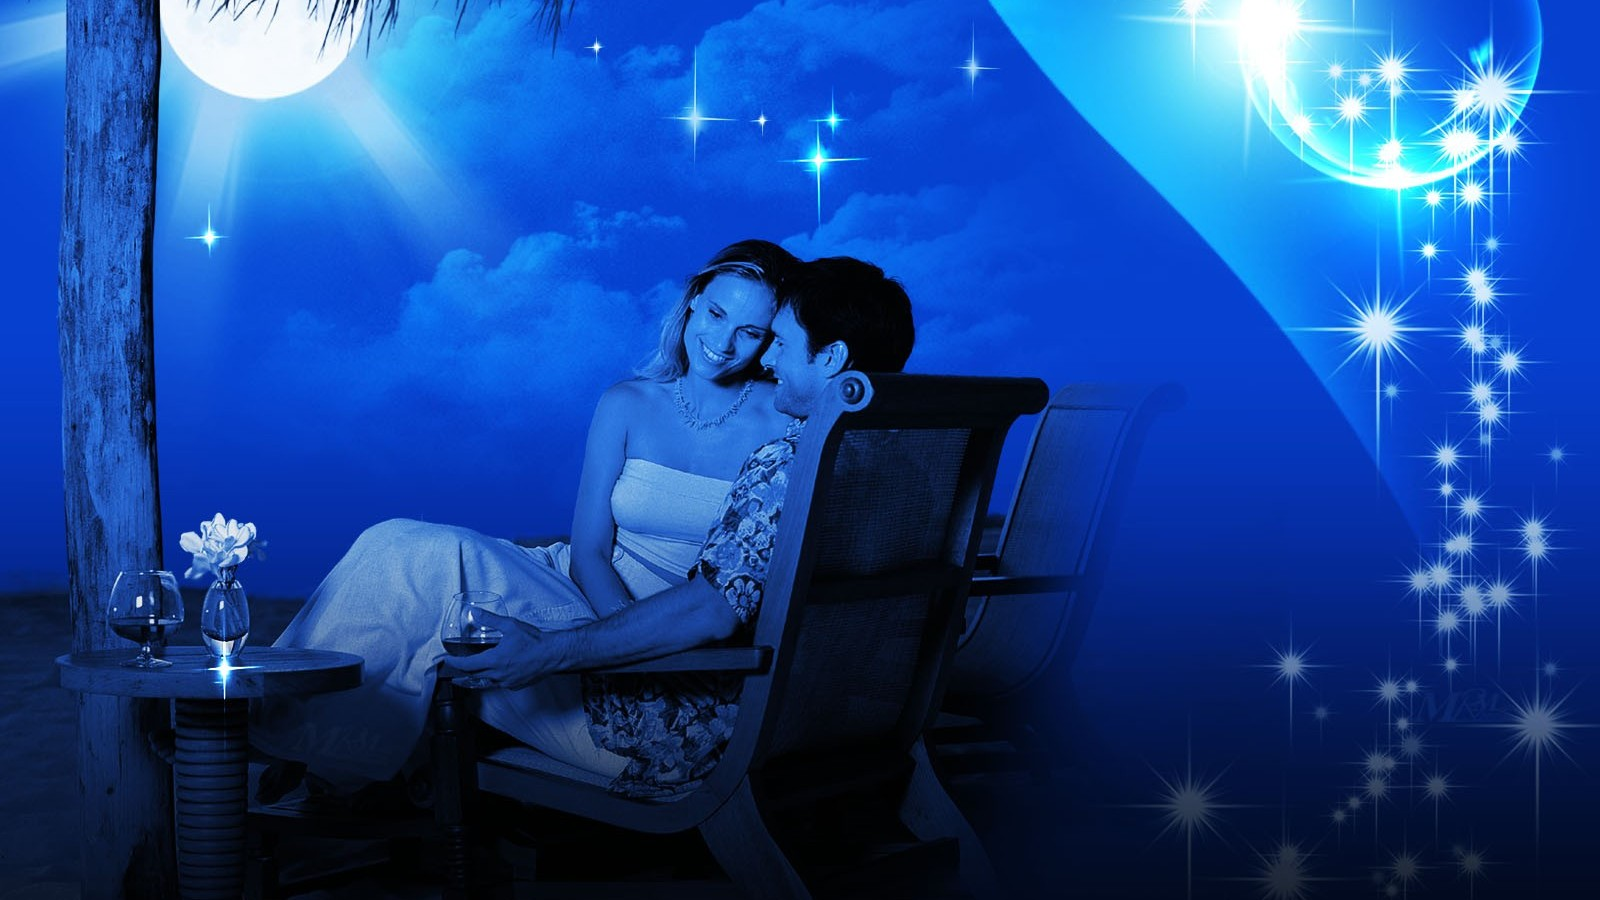 cute Love Wallpapers For Mobile 29 Free Hd Wallpaper ...